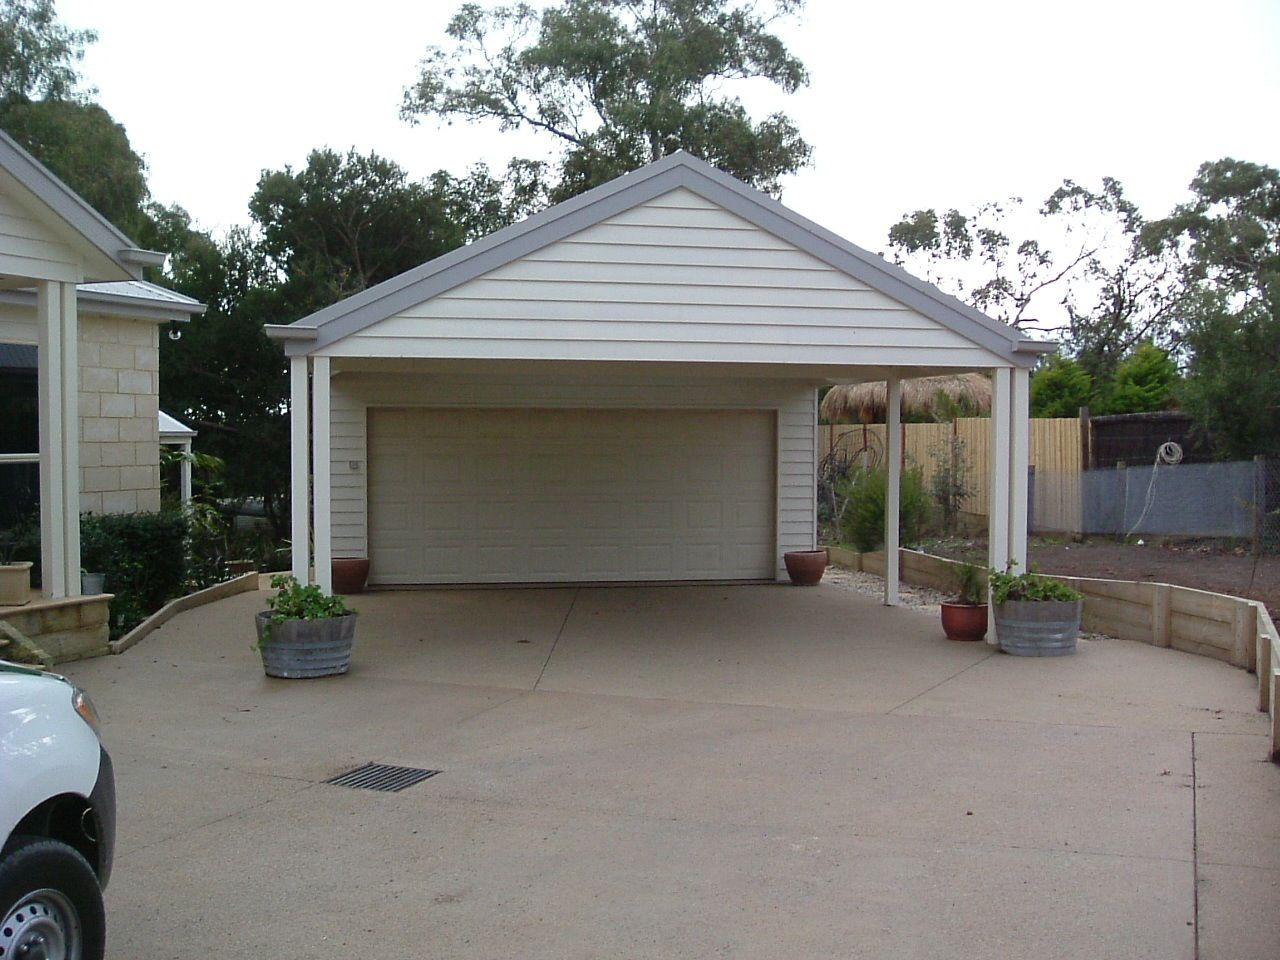 Carport ideas carport ideas pinterest carport ideas for Carport garage designs